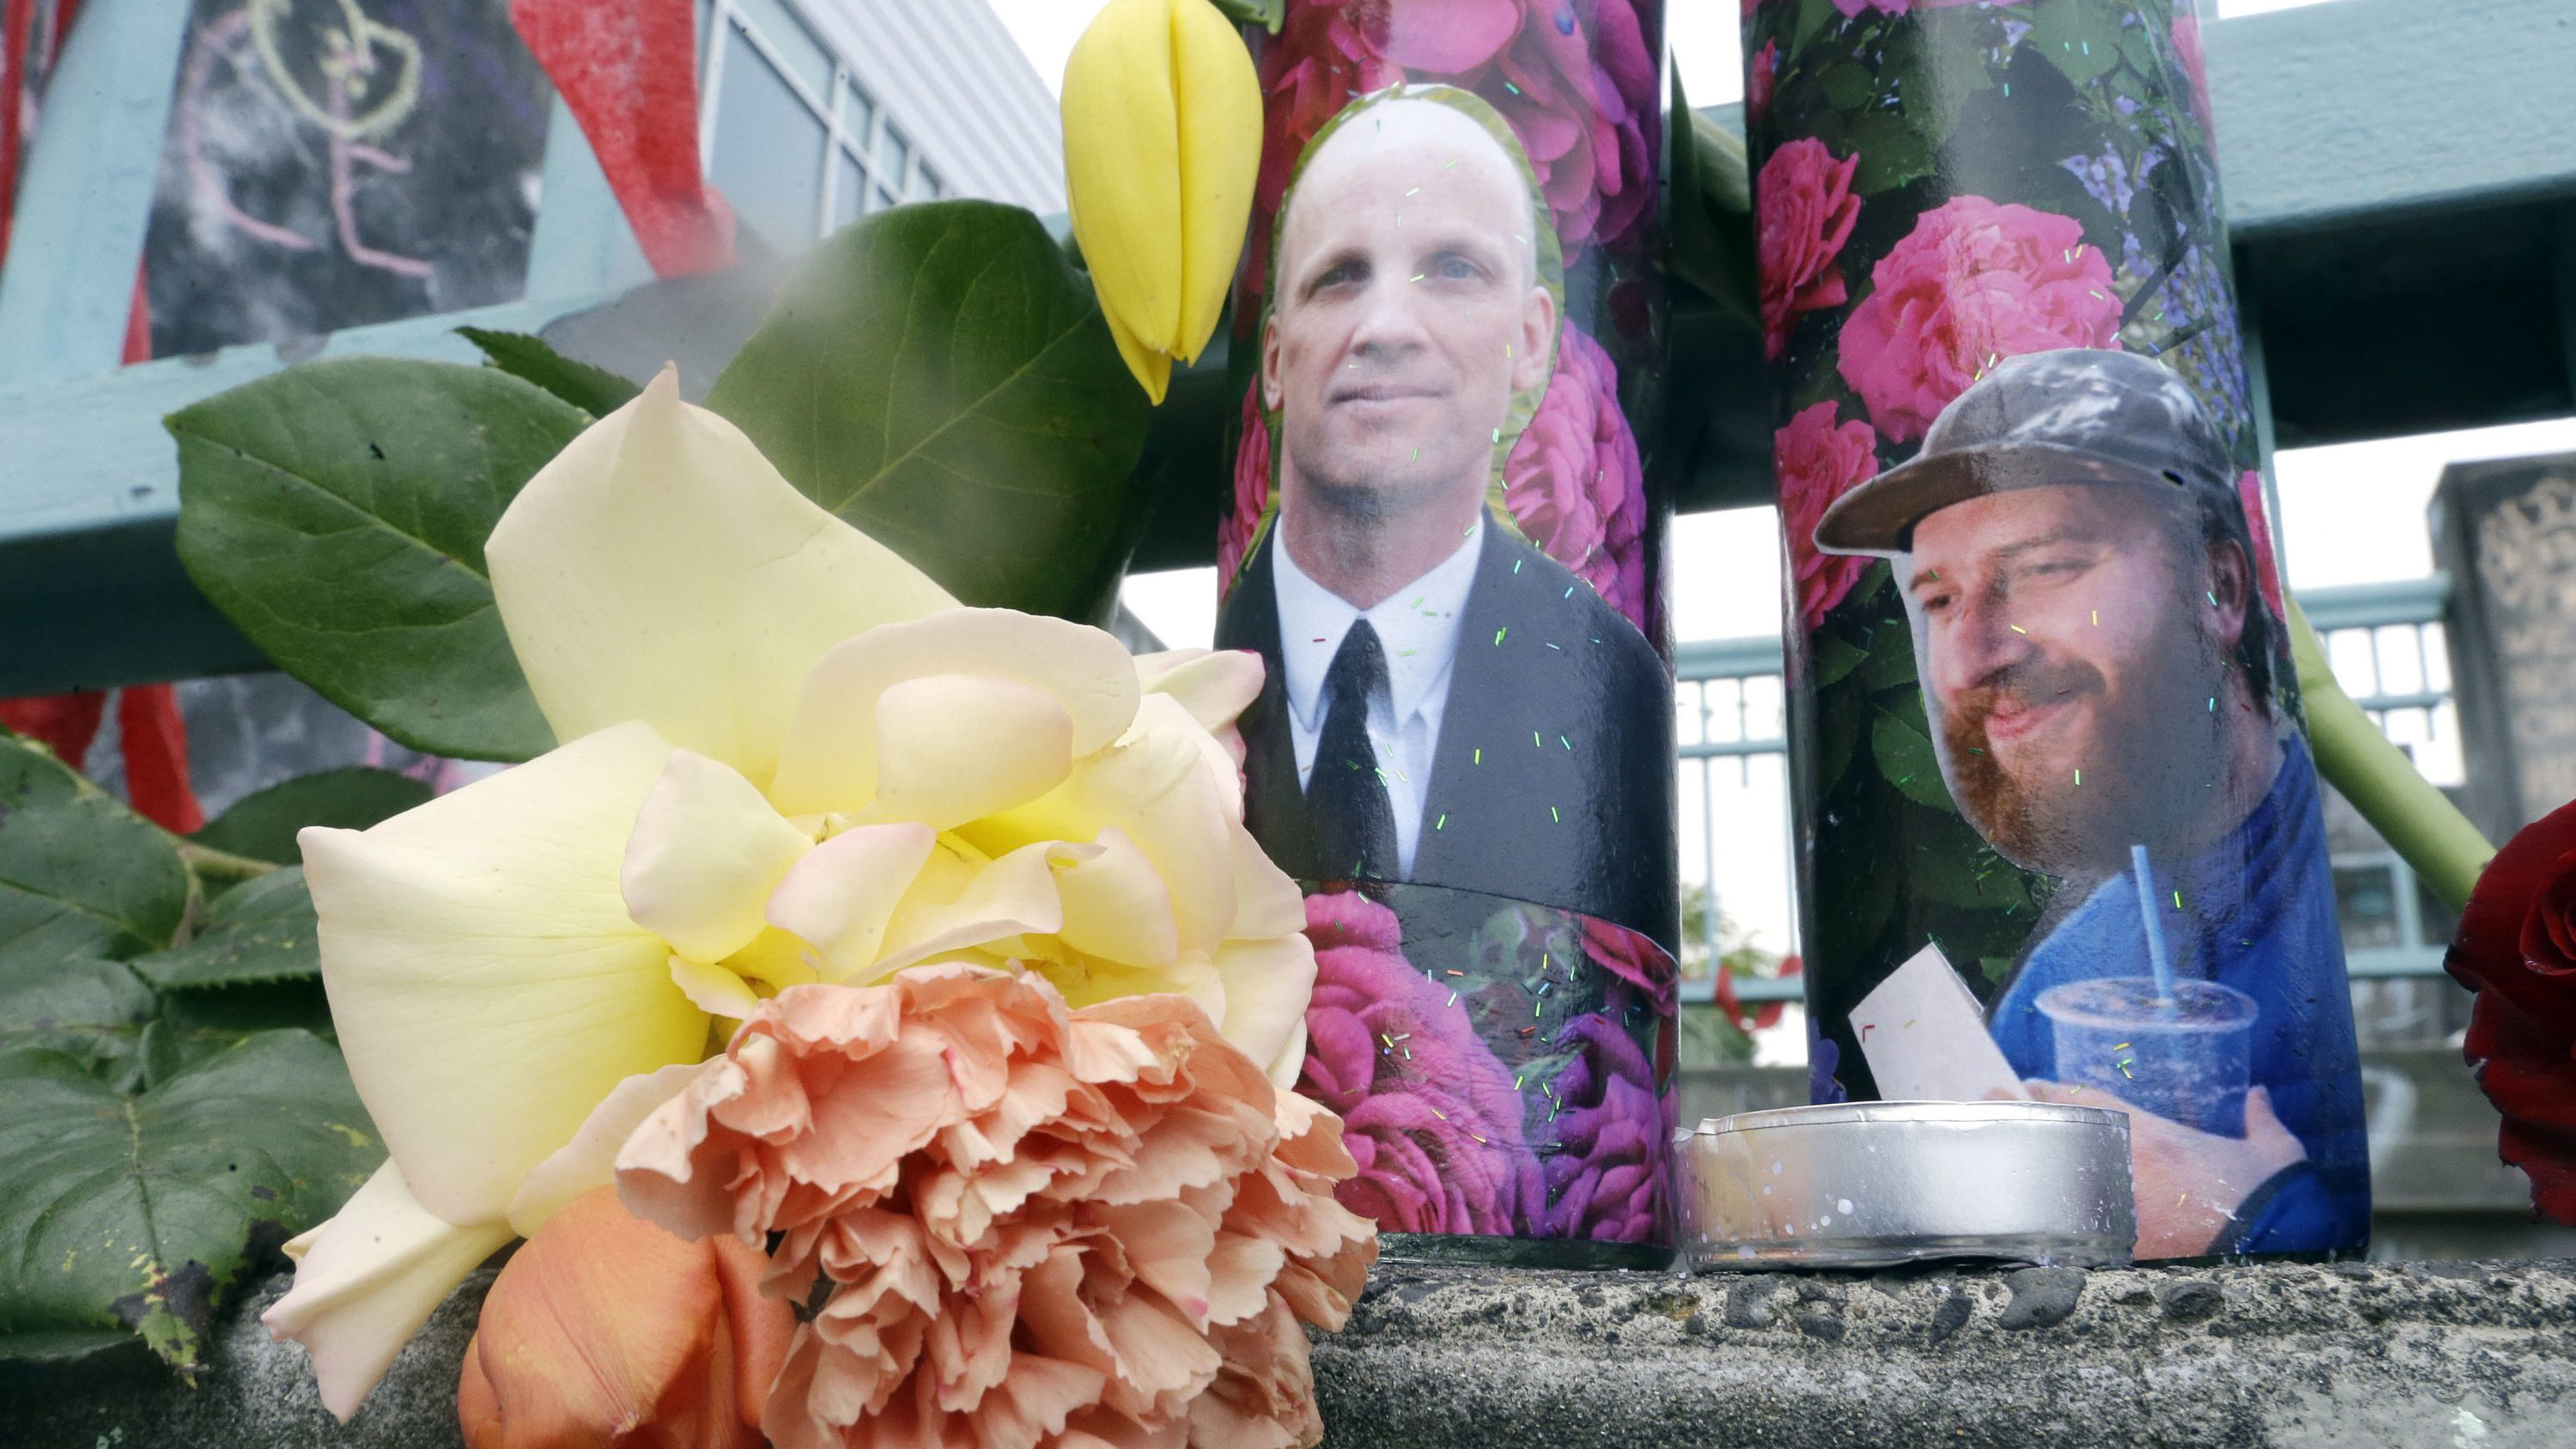 Candles with photos of Taliesin Namkai-Meche, right, and Ricky Best on them are shown at a memorial for the two men in Portland, Ore., Wednesday, May 31, 2017, The man charged with fatally stabbing the two men and injuring a third who tried to shield young women from an anti-Muslim tirade, appeared to brag about the attacks as he sat in the back of a police patrol car according to court documents.